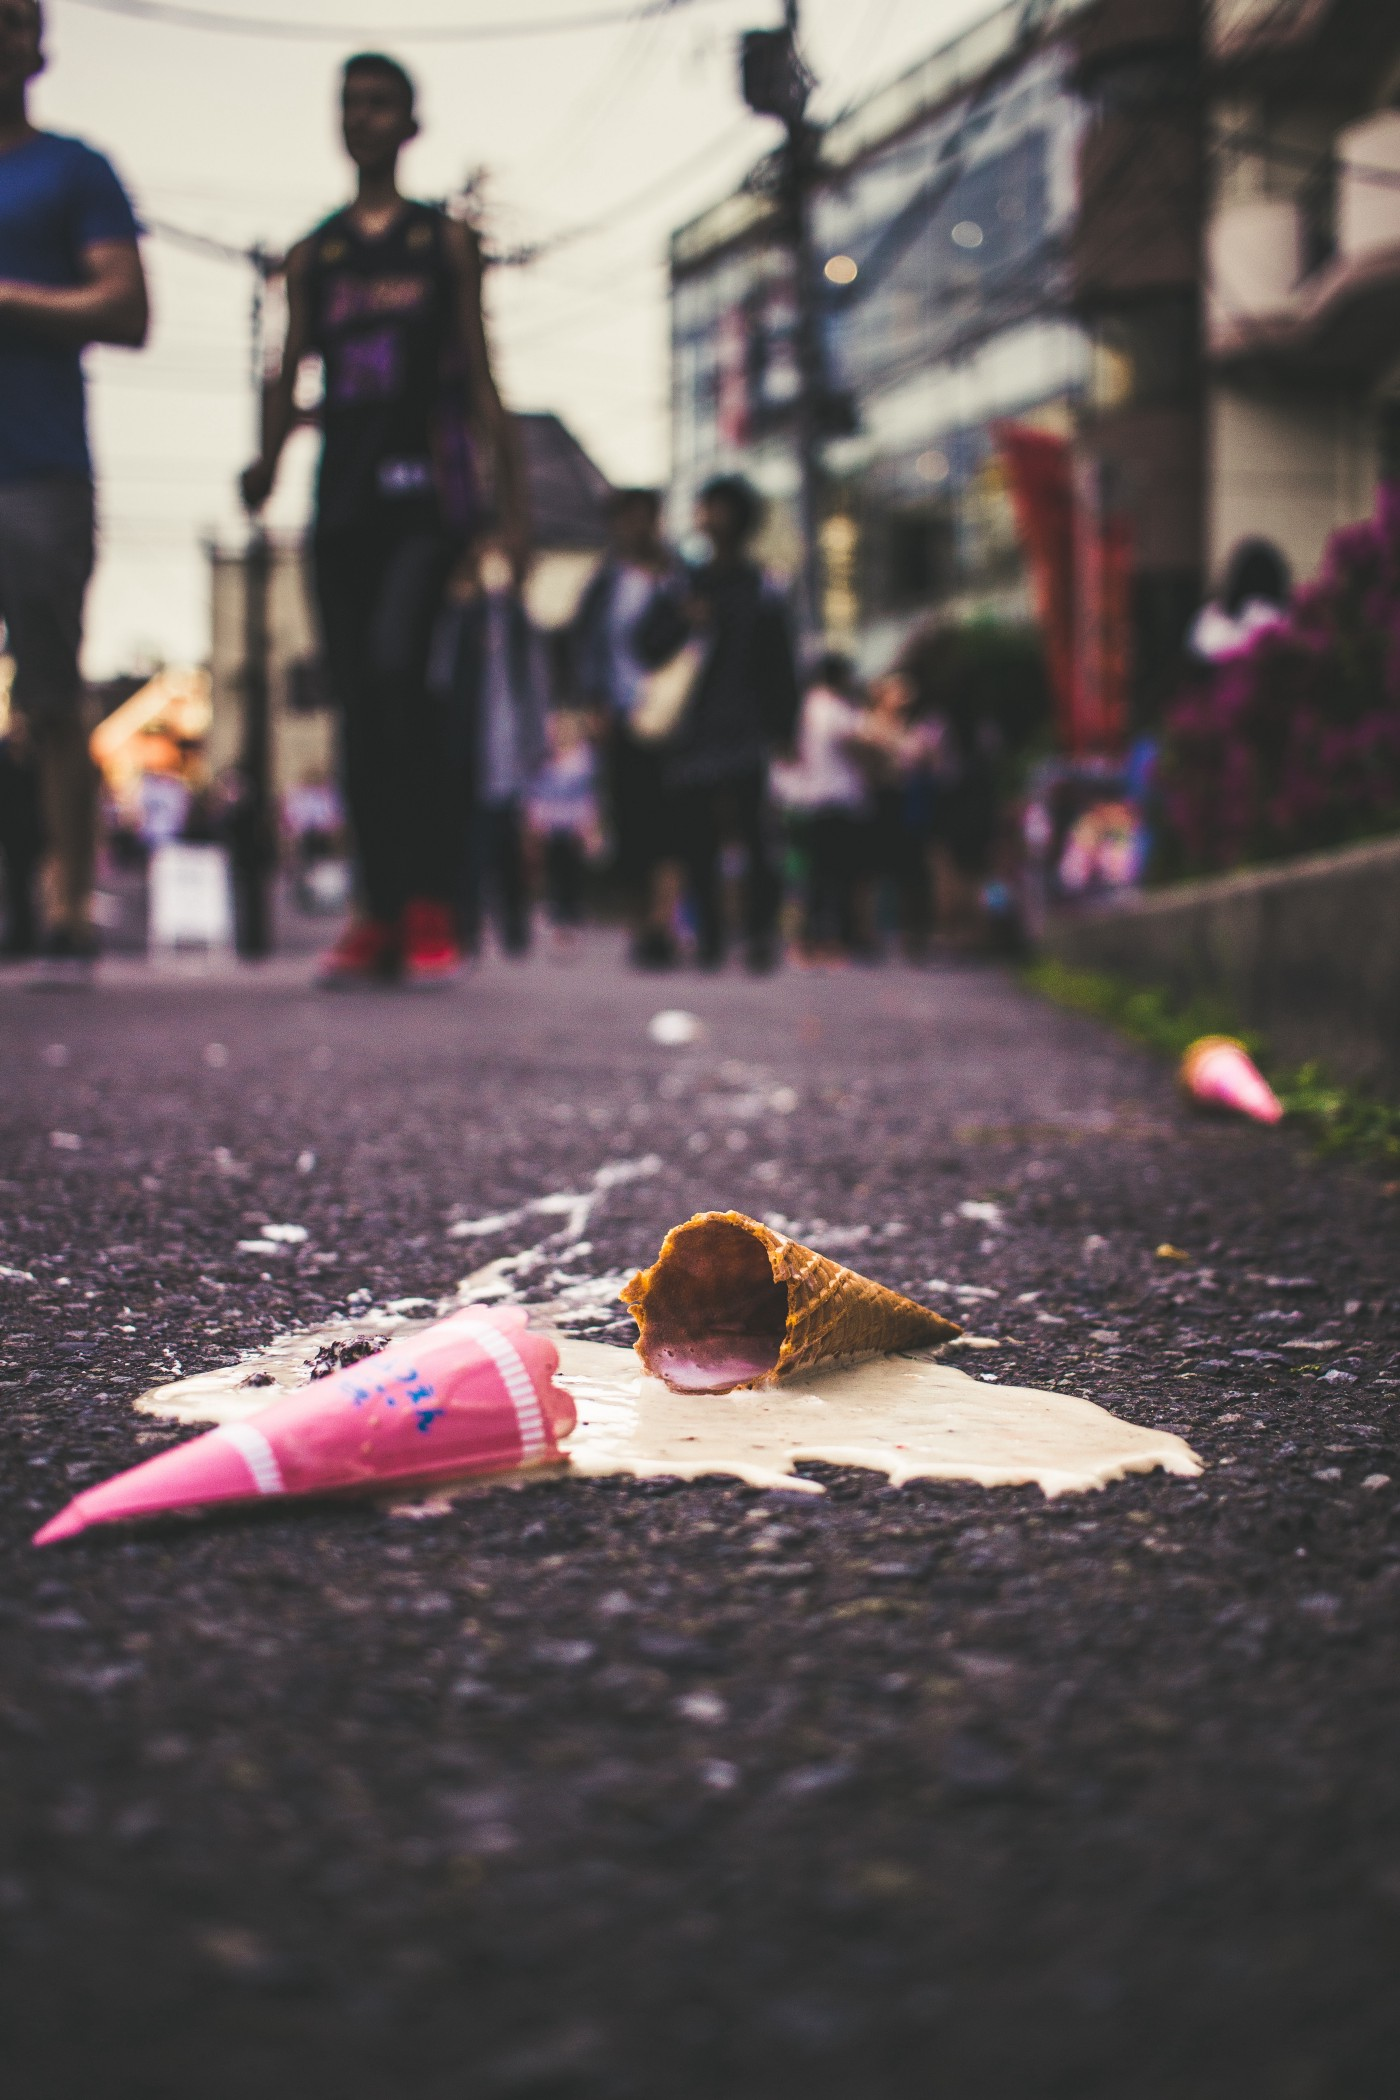 ice cream cone on the street in a puddle of melted ice cream